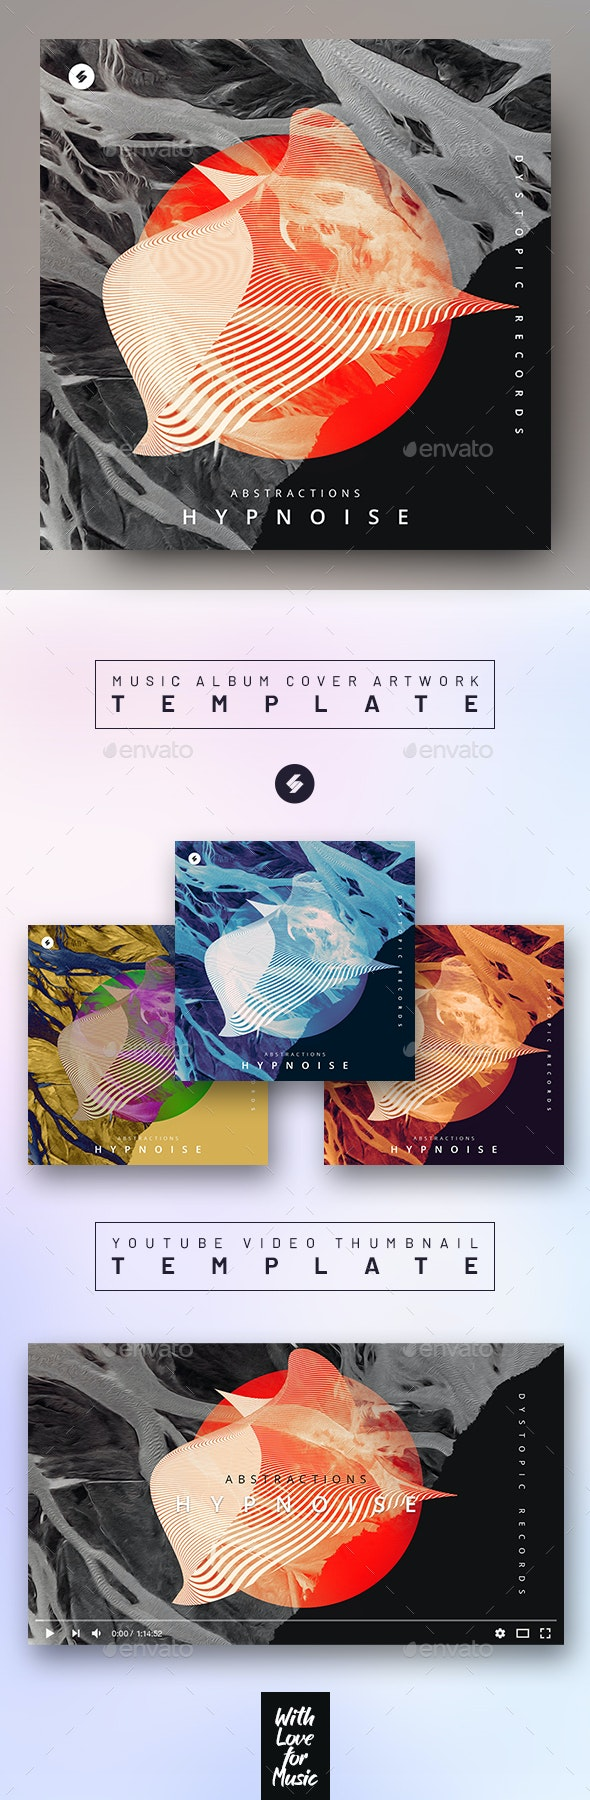 Abstractions – Music Album Cover Artwork / Video Thumbnail Template - Miscellaneous Social Media